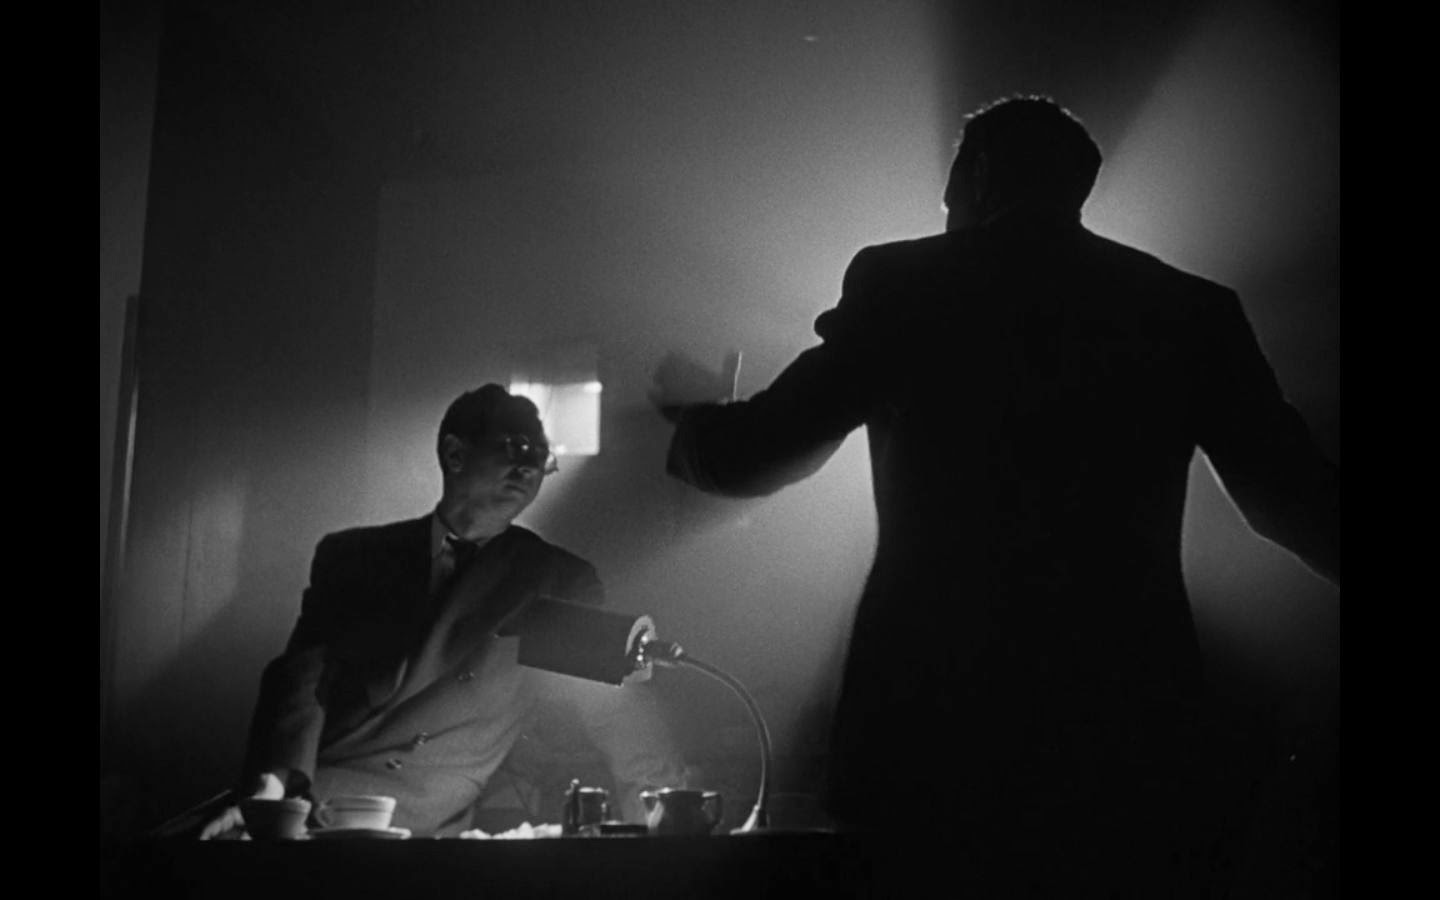 critics at large orson welles modernist and elegist